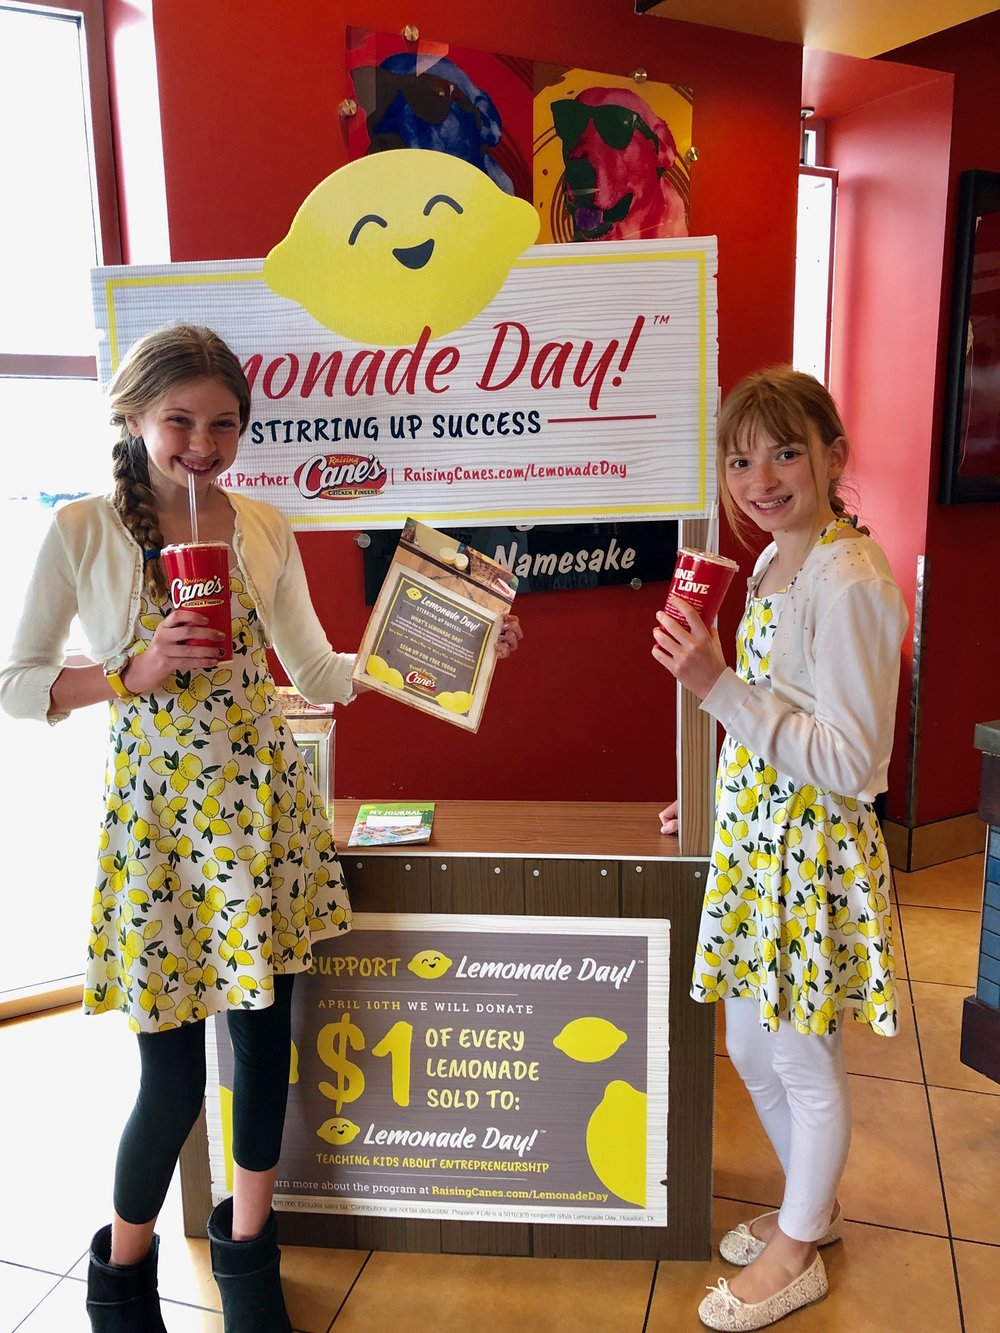 canes lemonade day fundraiser.JPG